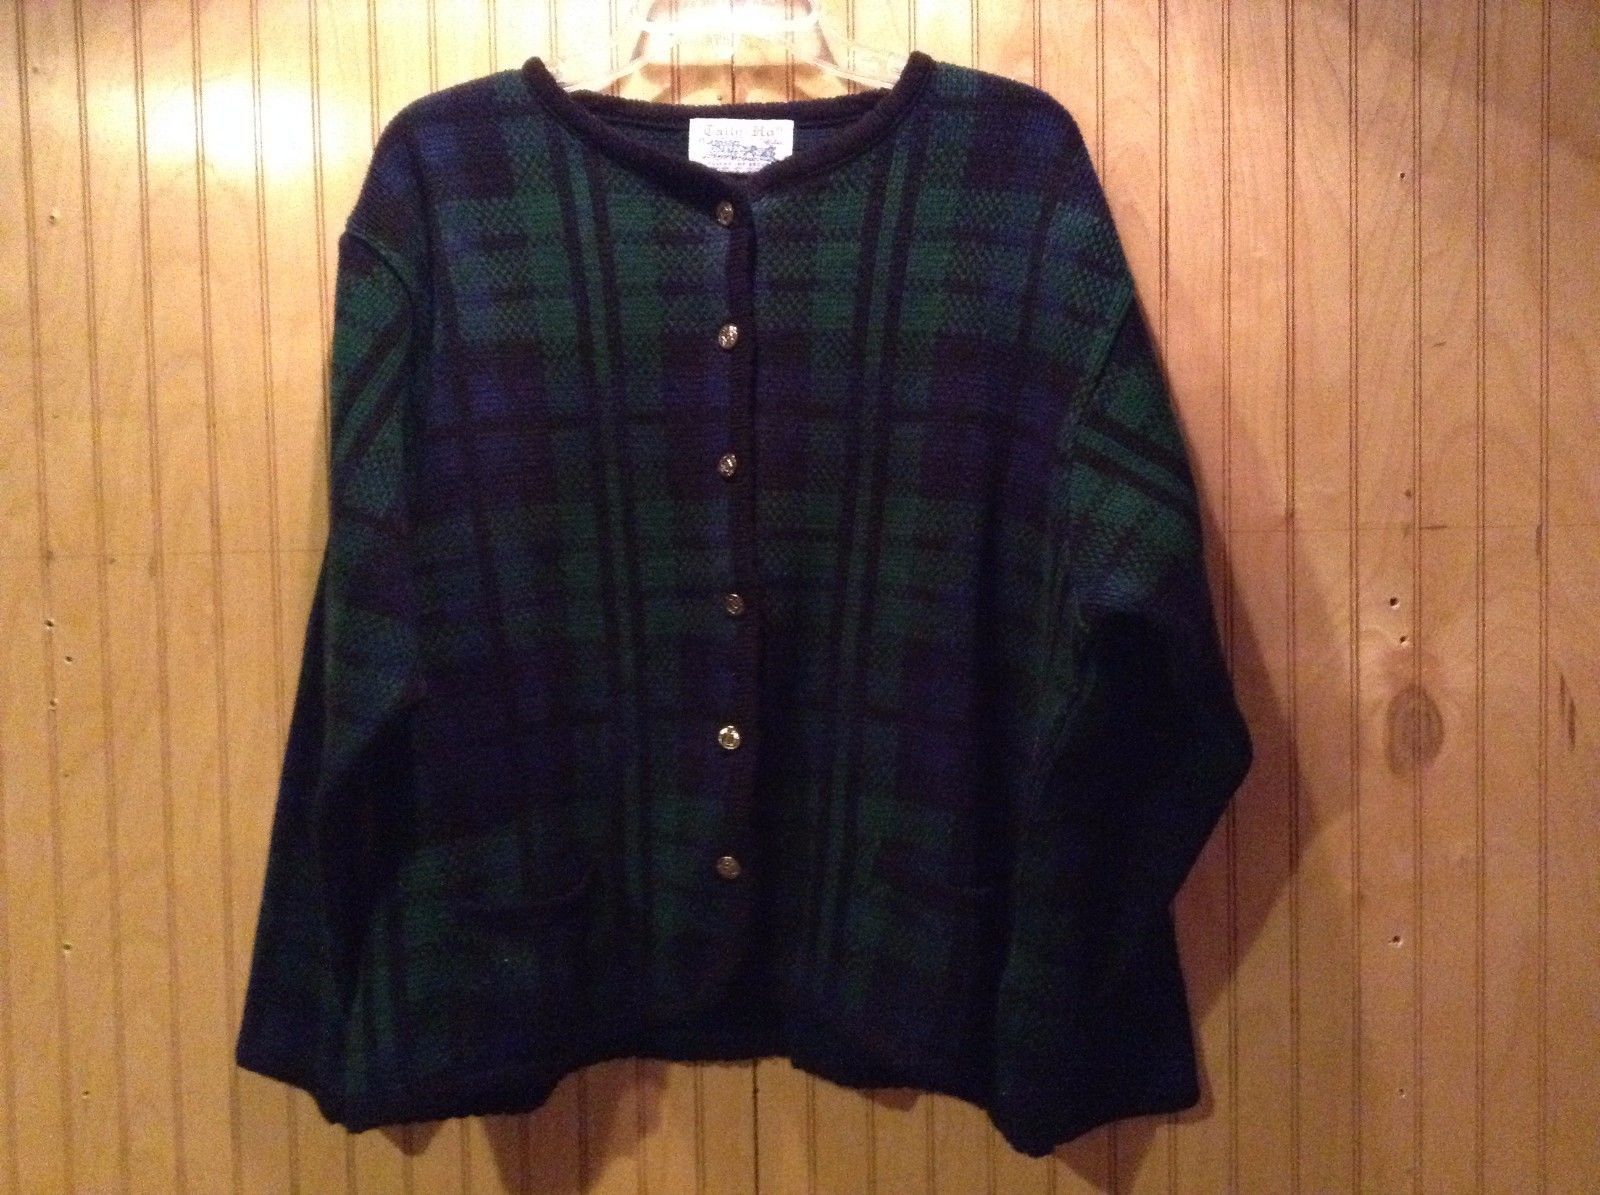 Tally Ho Green Black Blue Checkered Riding Jacket with Buttons